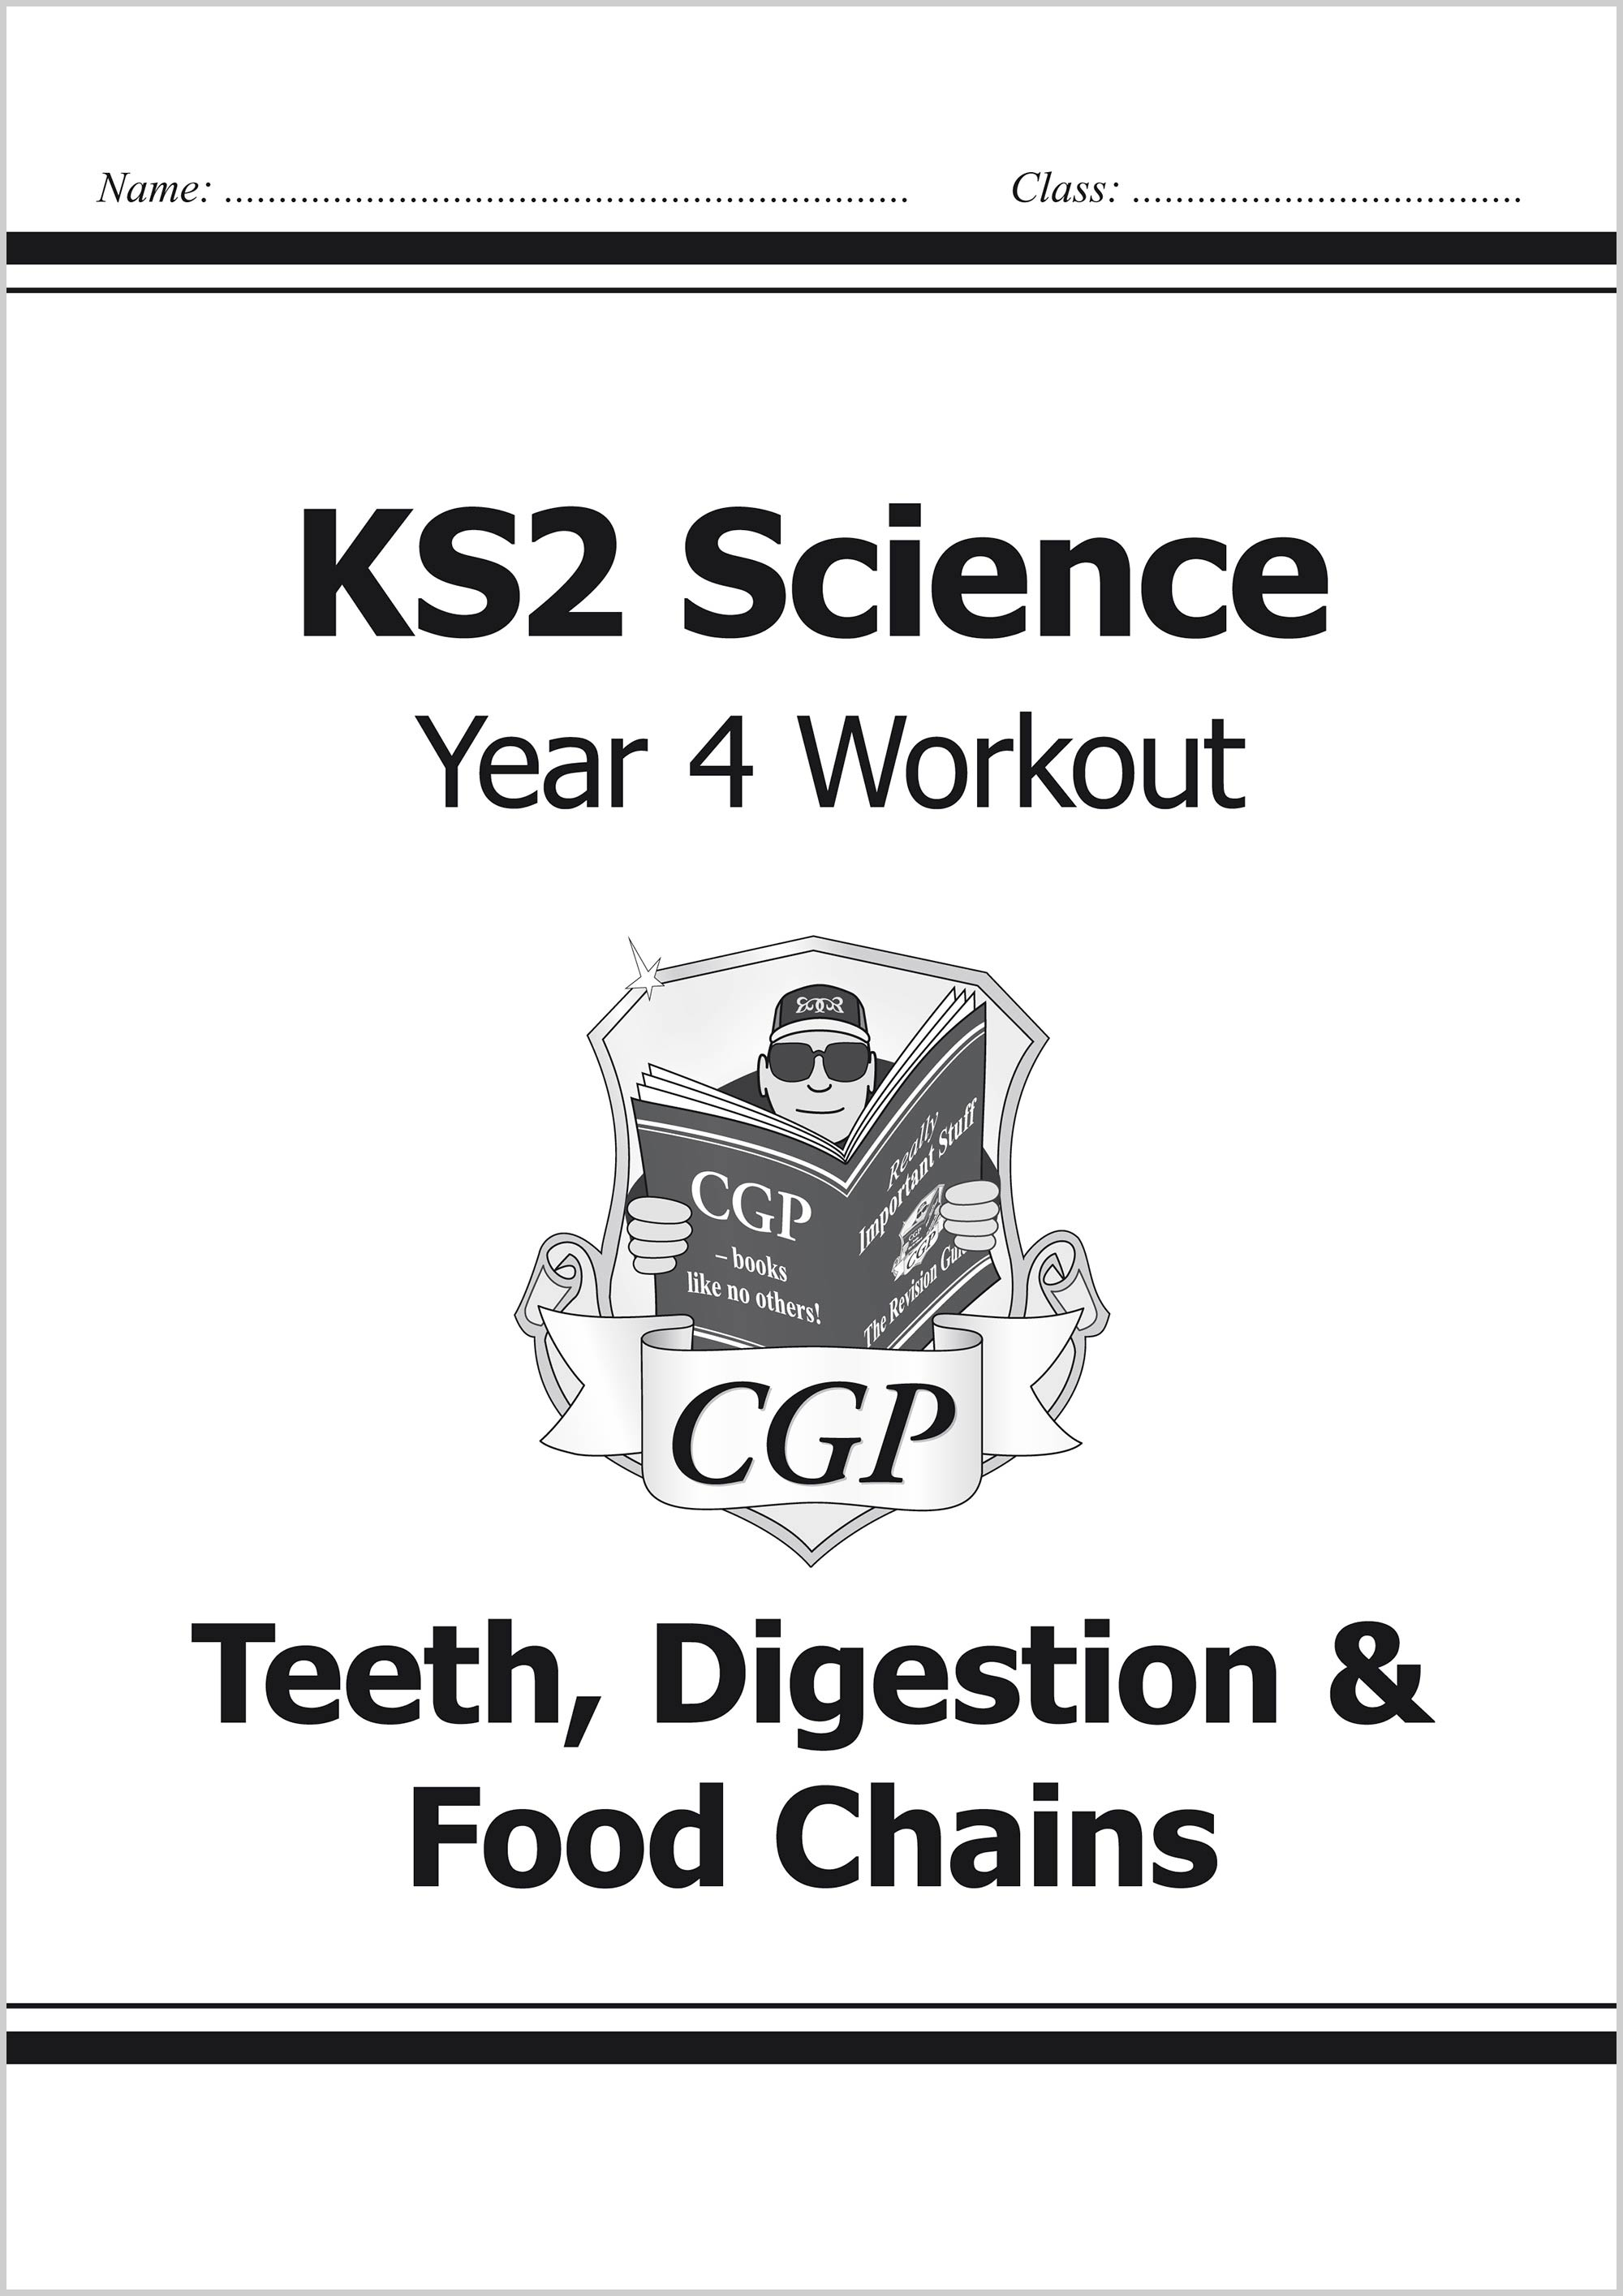 Ks2 Science Year Four Workout Teeth Digestion Amp Food Chains